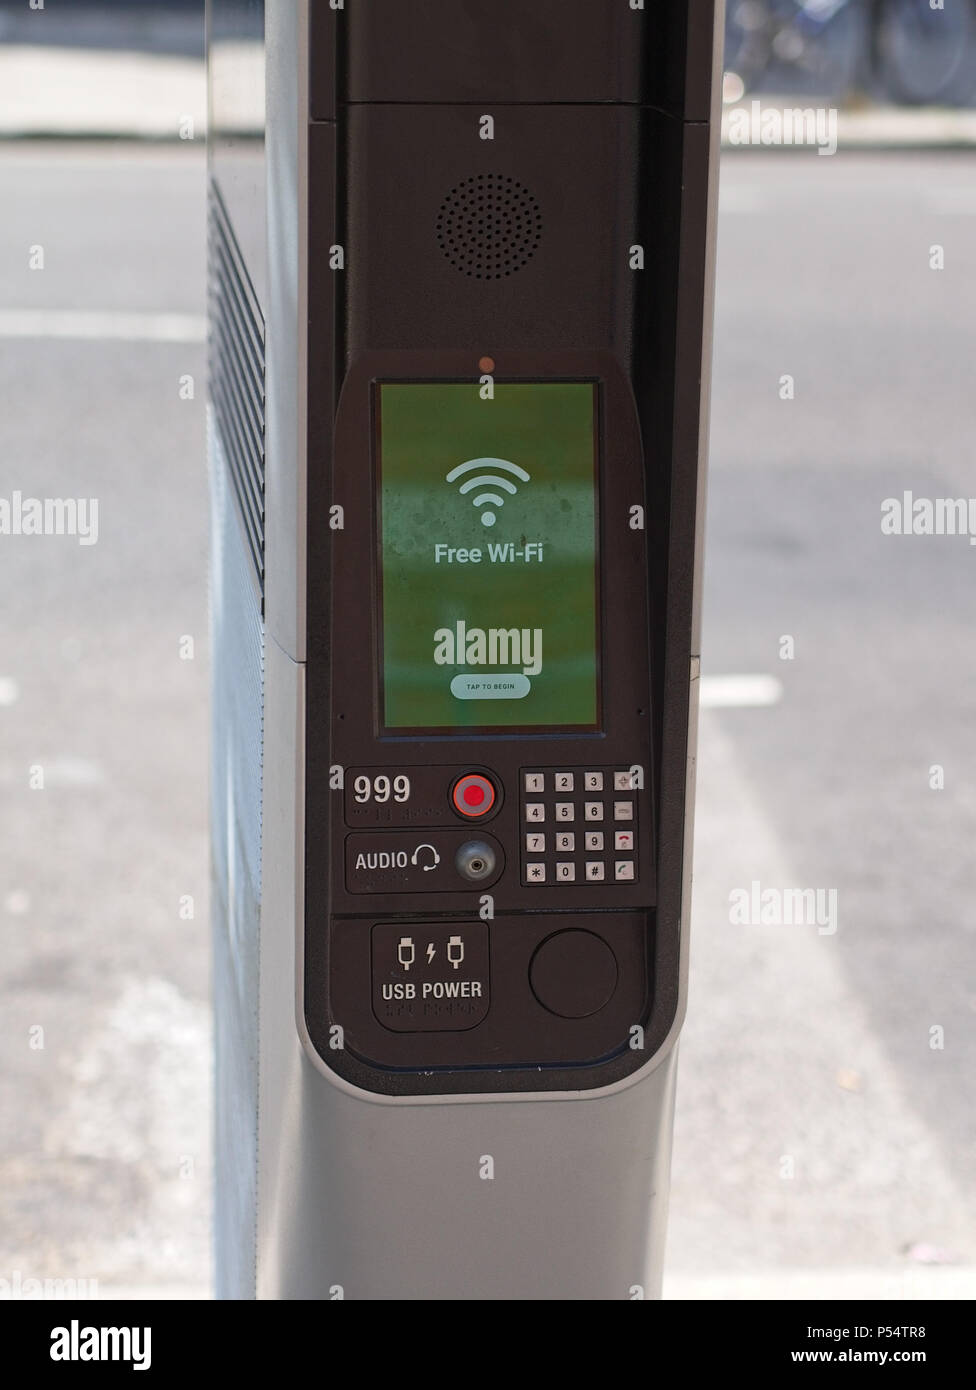 Closeup of London's new kiosks offering free ultrafast Wi-Fi, mobile charging, calls and local information. Digital display showing'Free Wi-Fi'. - Stock Image